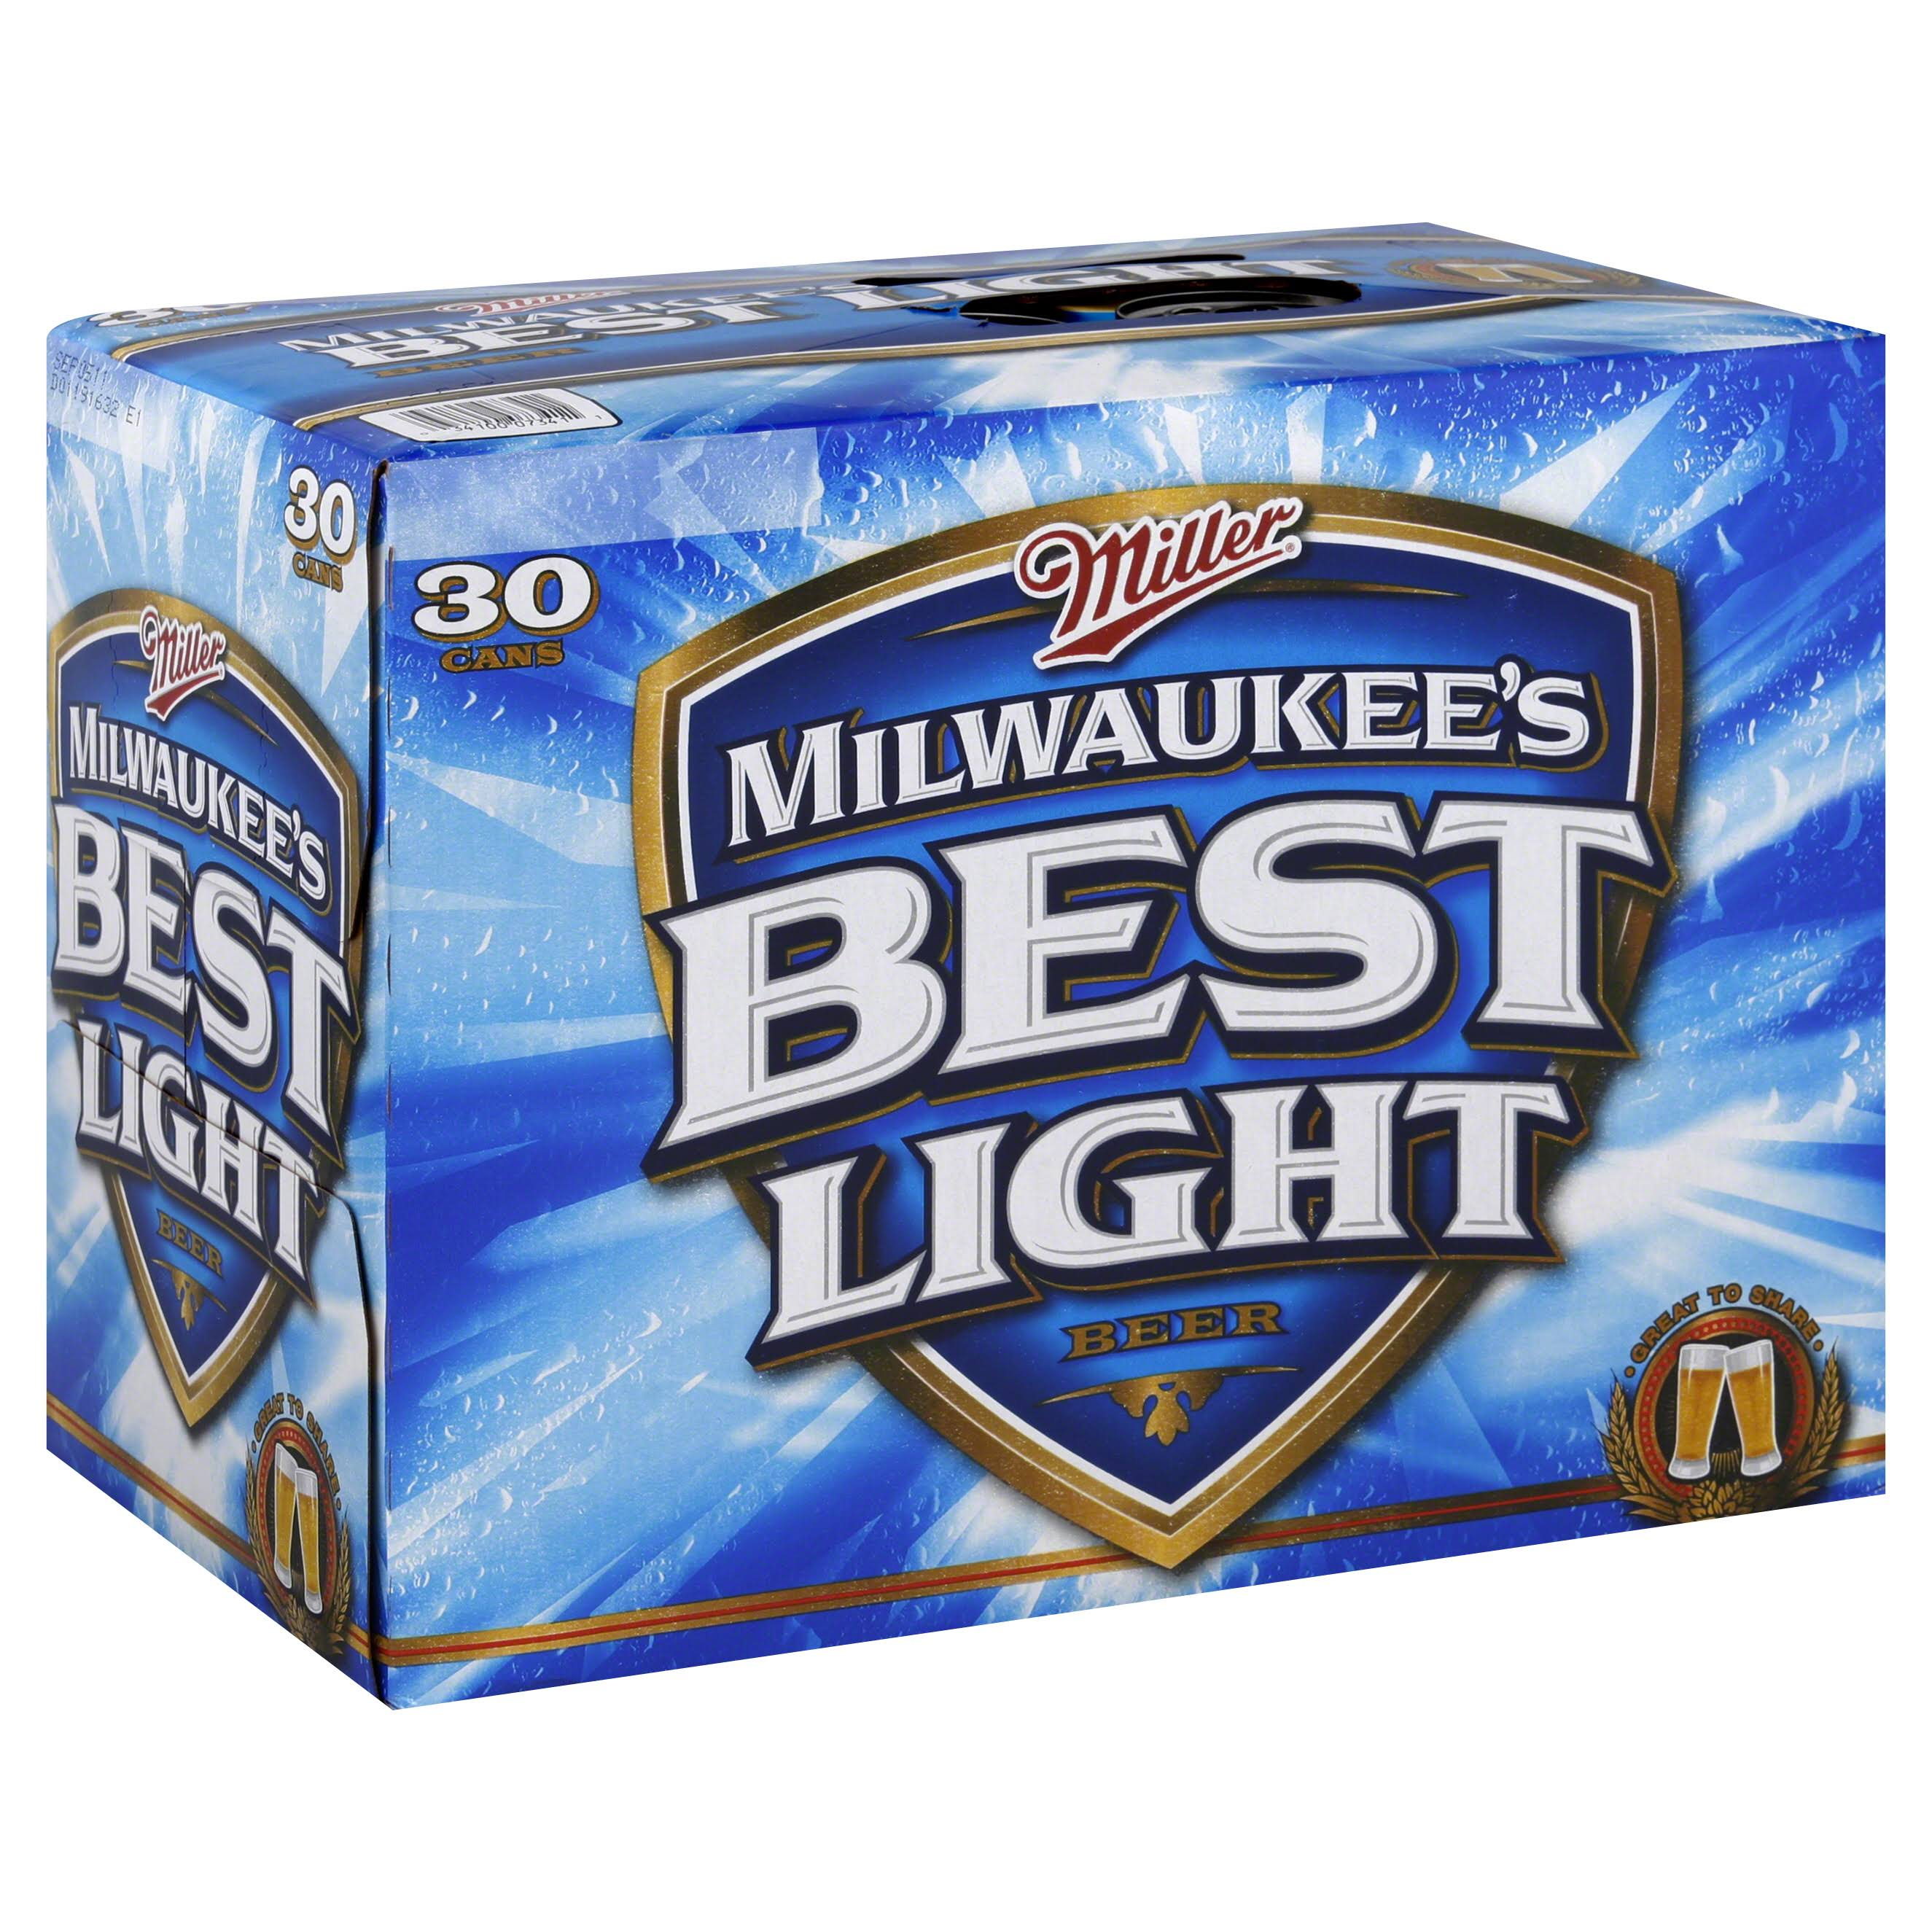 Milwaukee's Best Light Beer - 12 oz, 30 pk